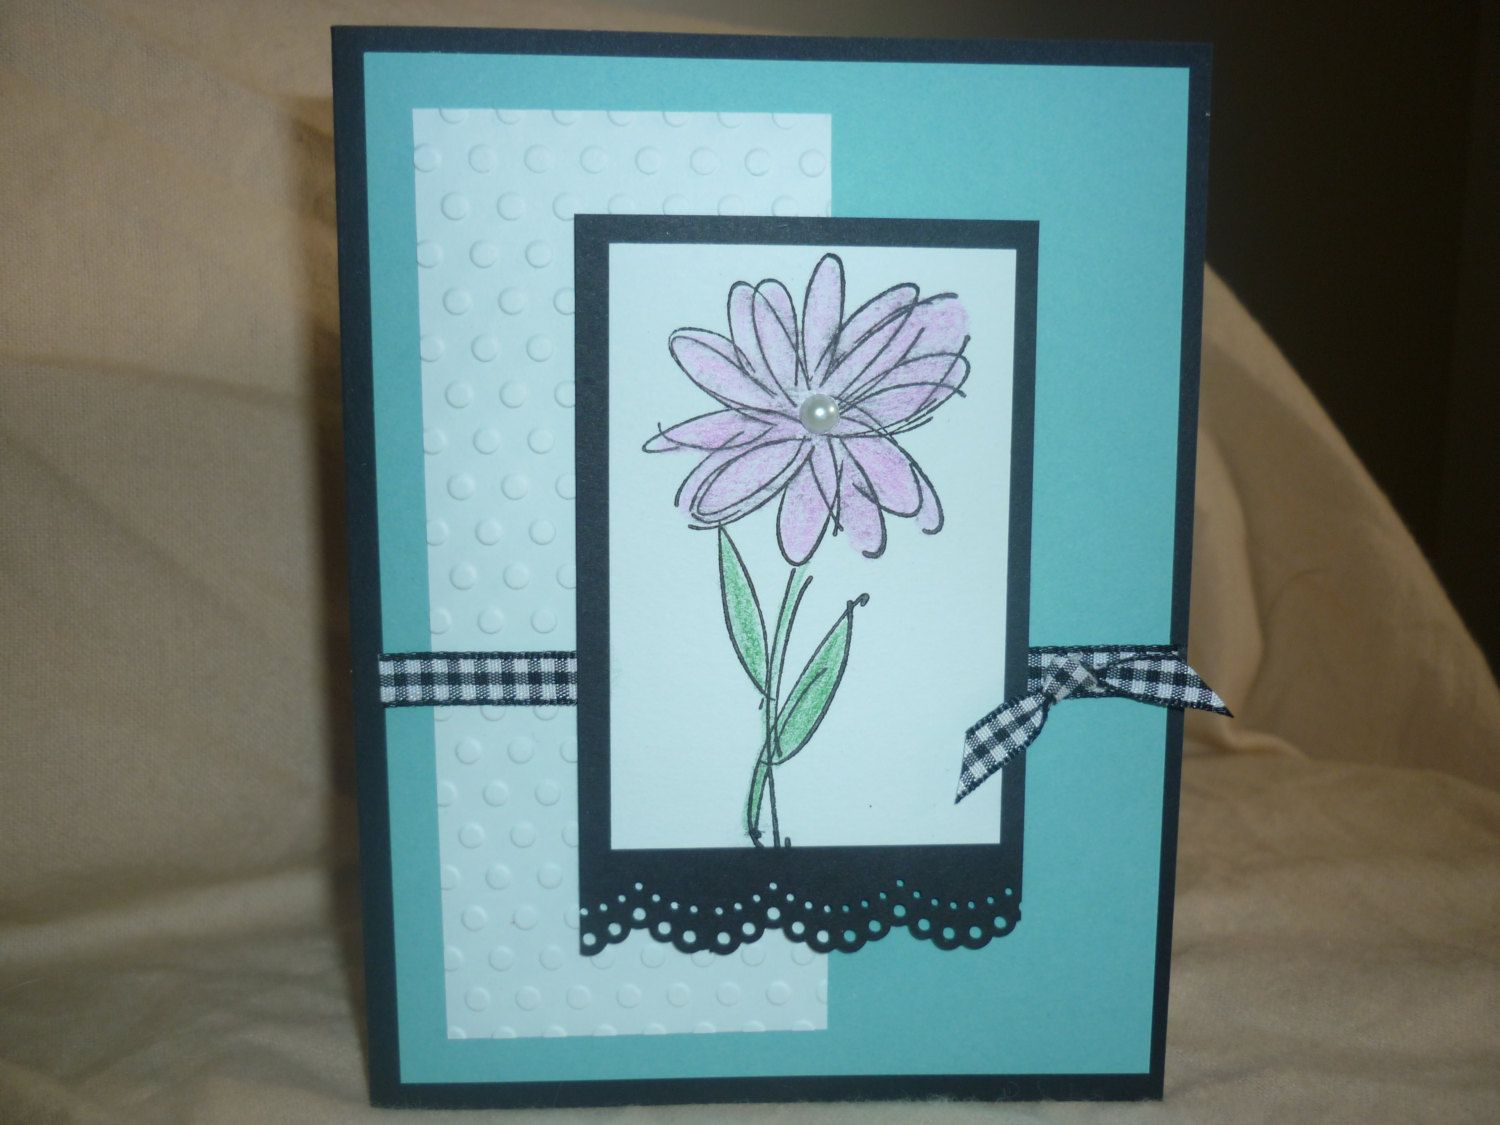 Handmade everyday card by Wrightcards on Etsy